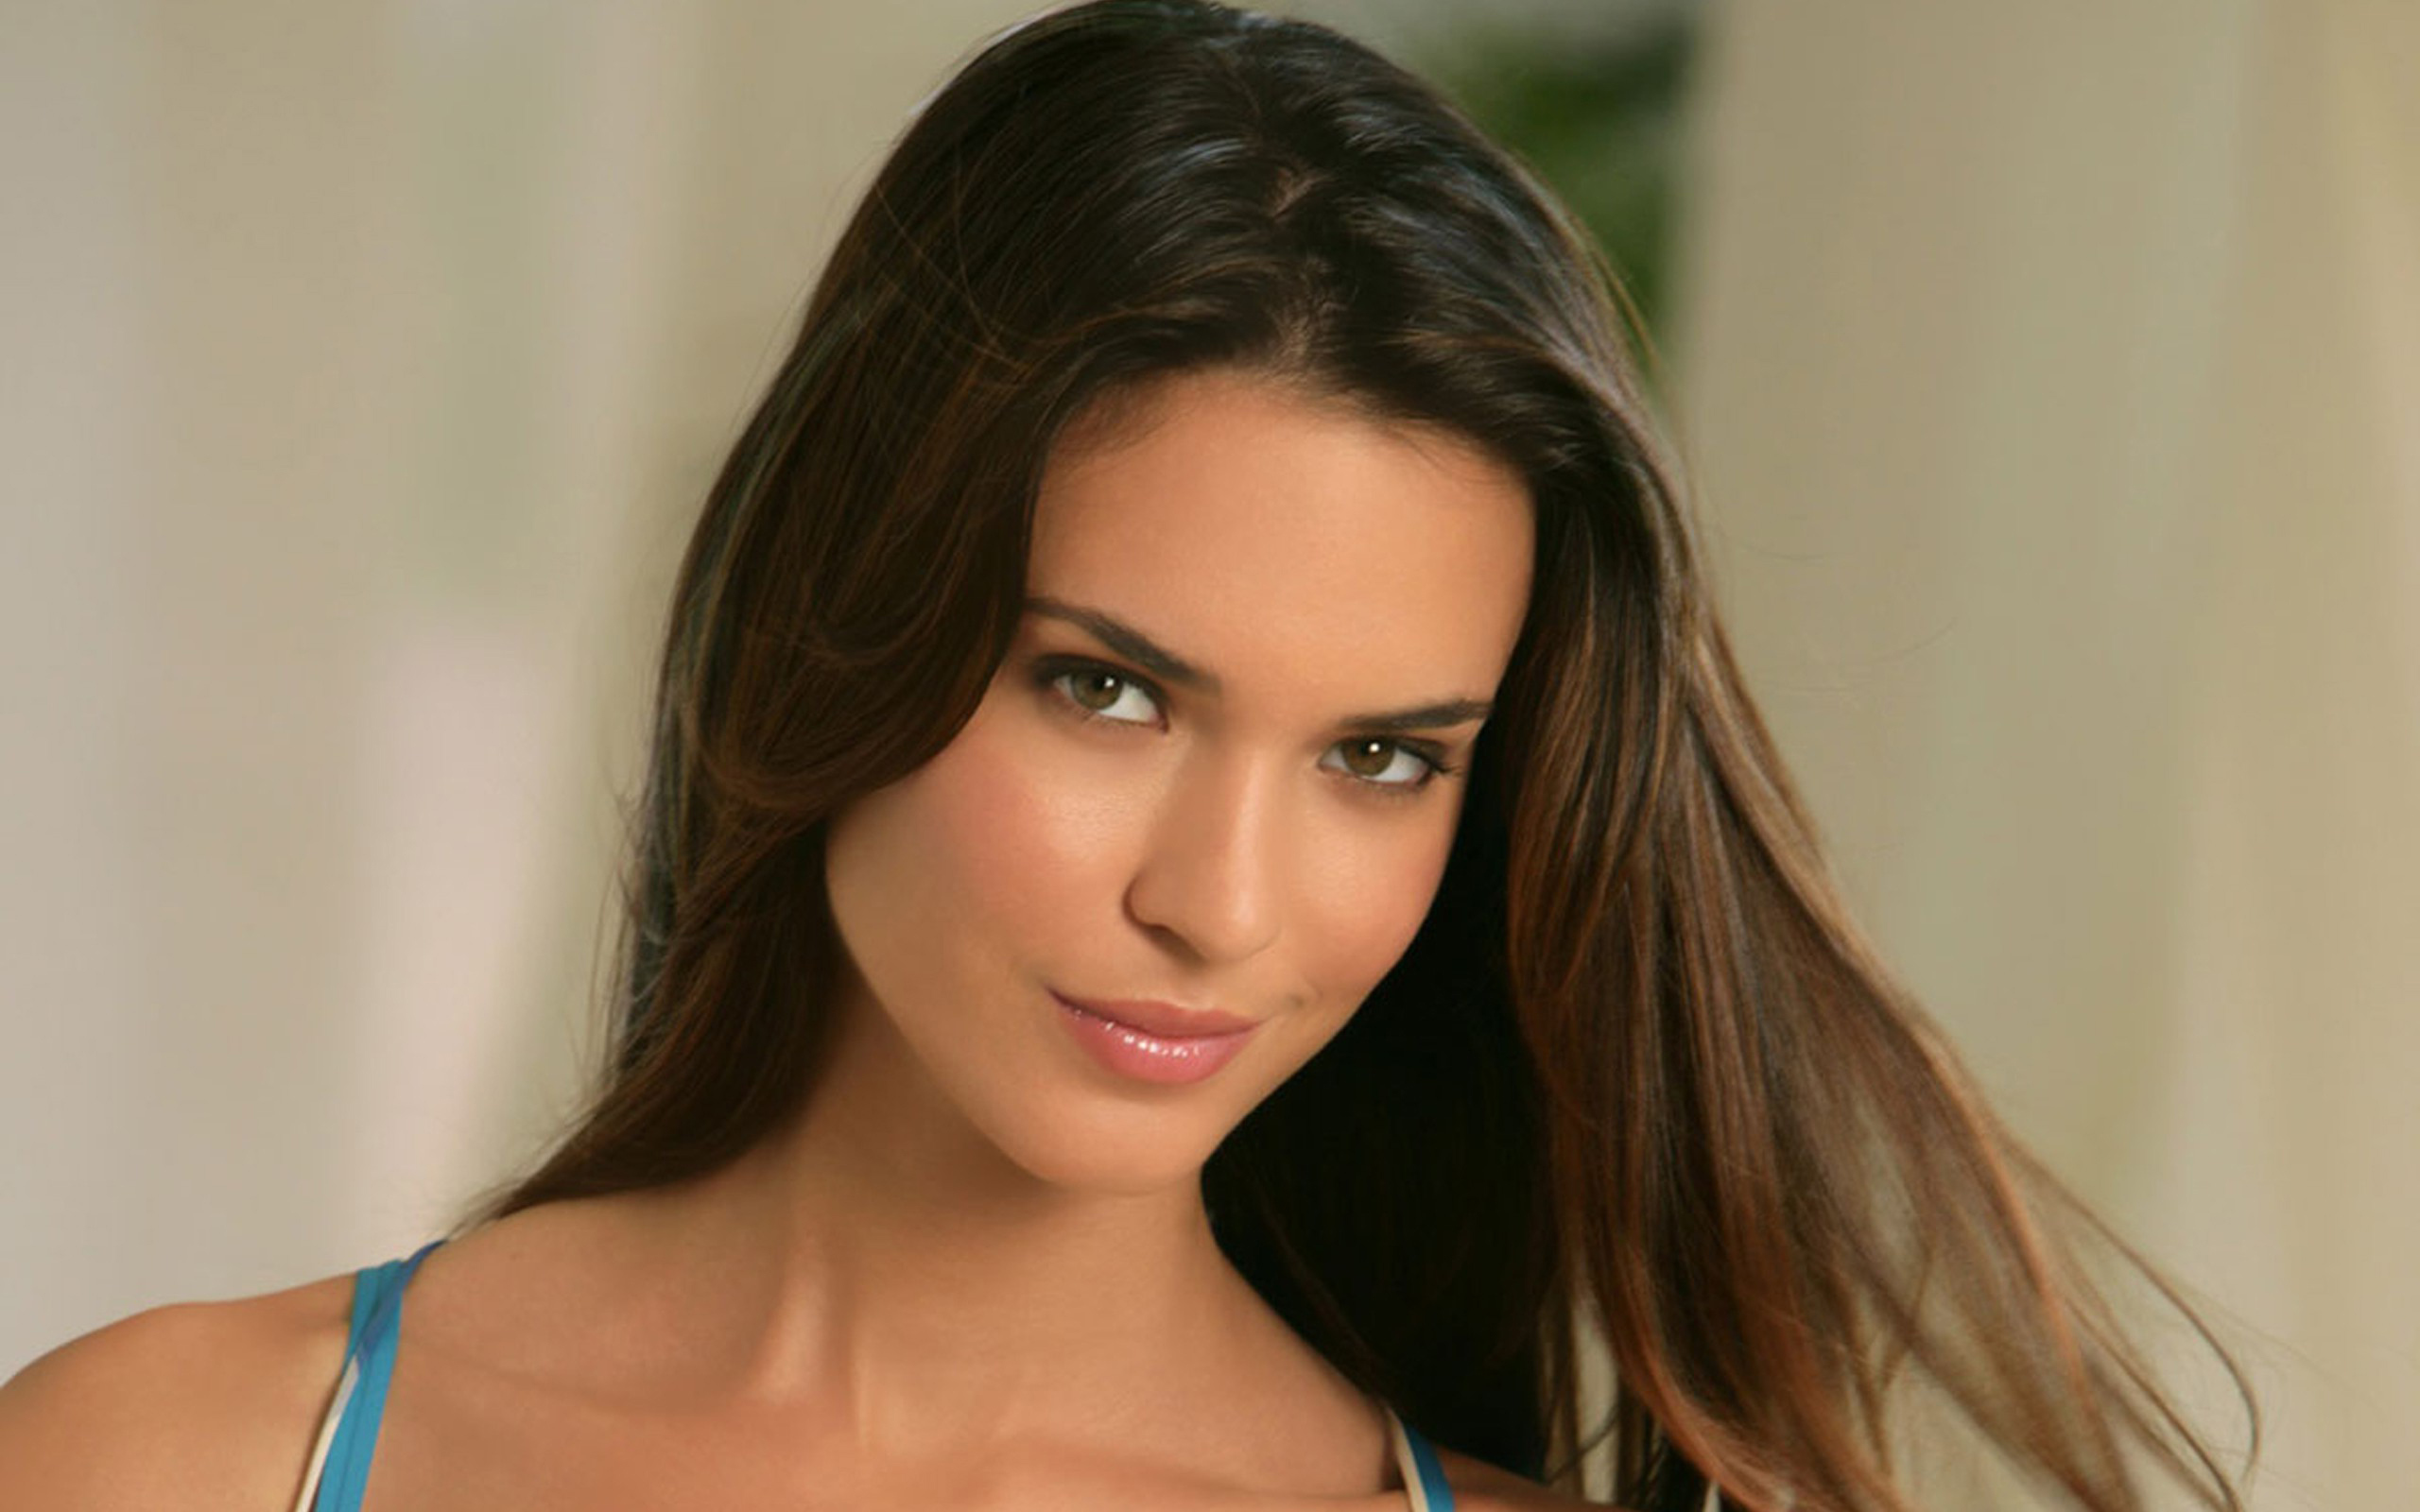 2560x1600 - Odette Annable Wallpapers 32